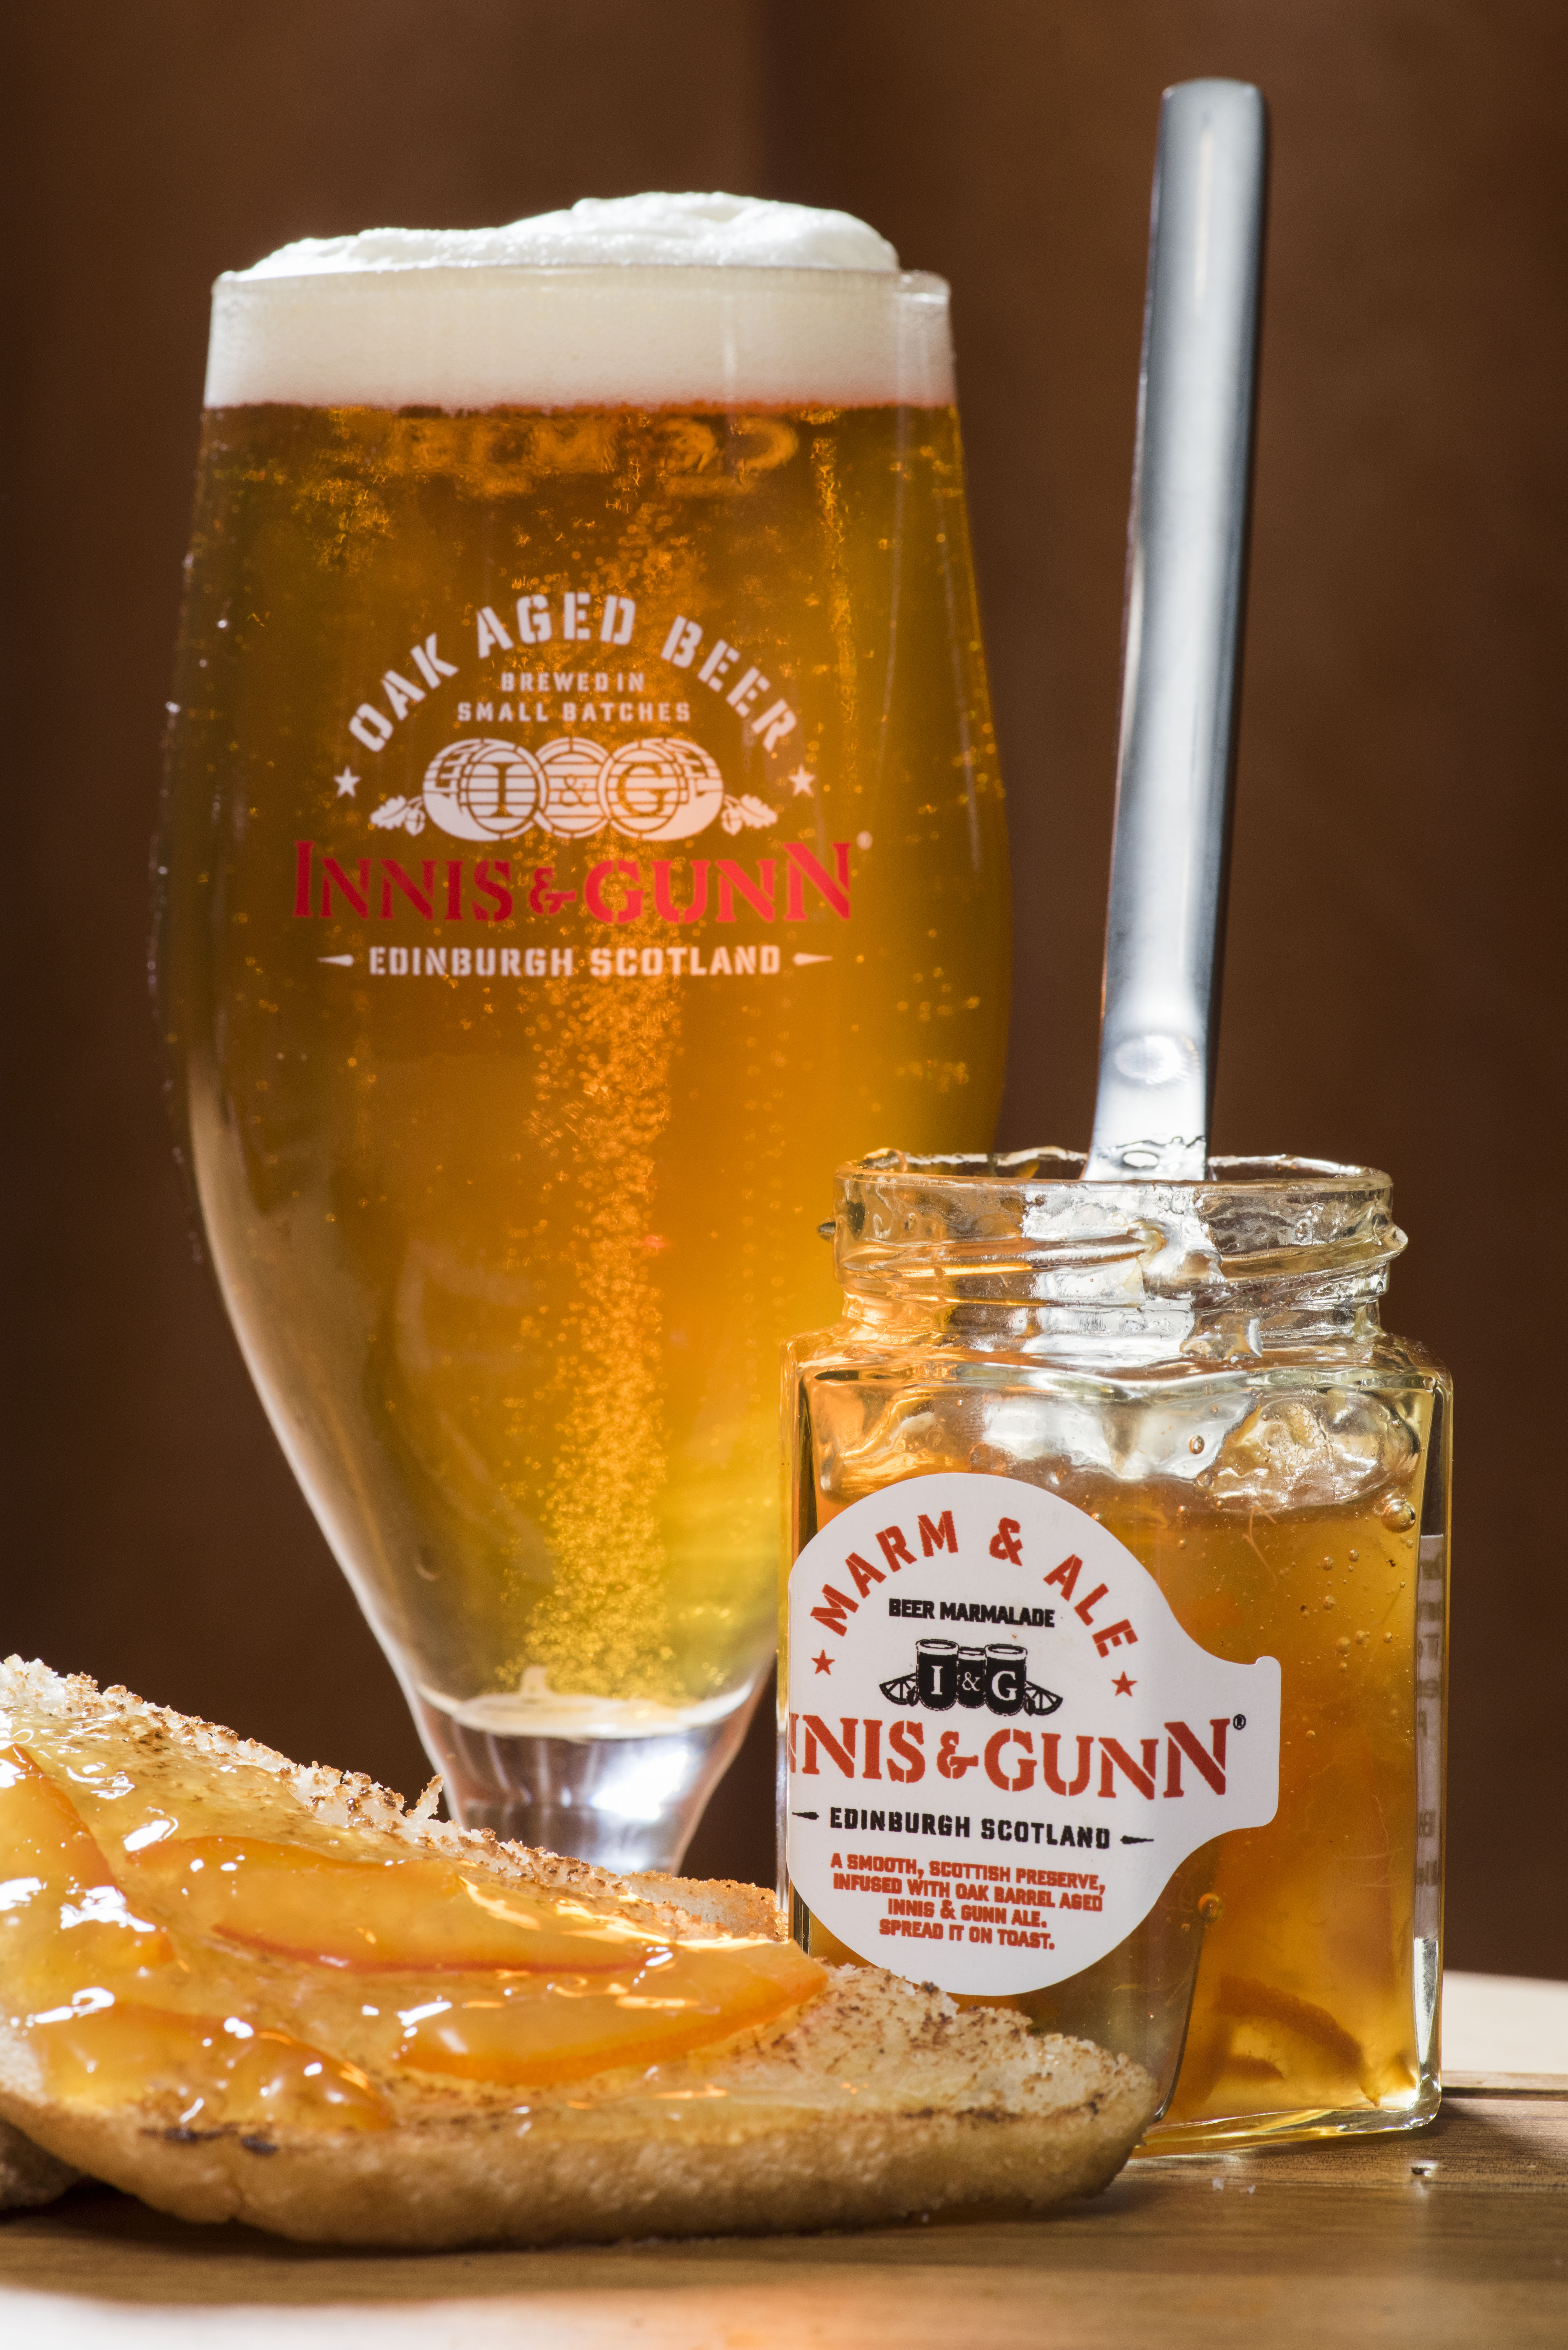 Innis & Gunn opens The Beer Kitchen in Dundee with spreadable beer